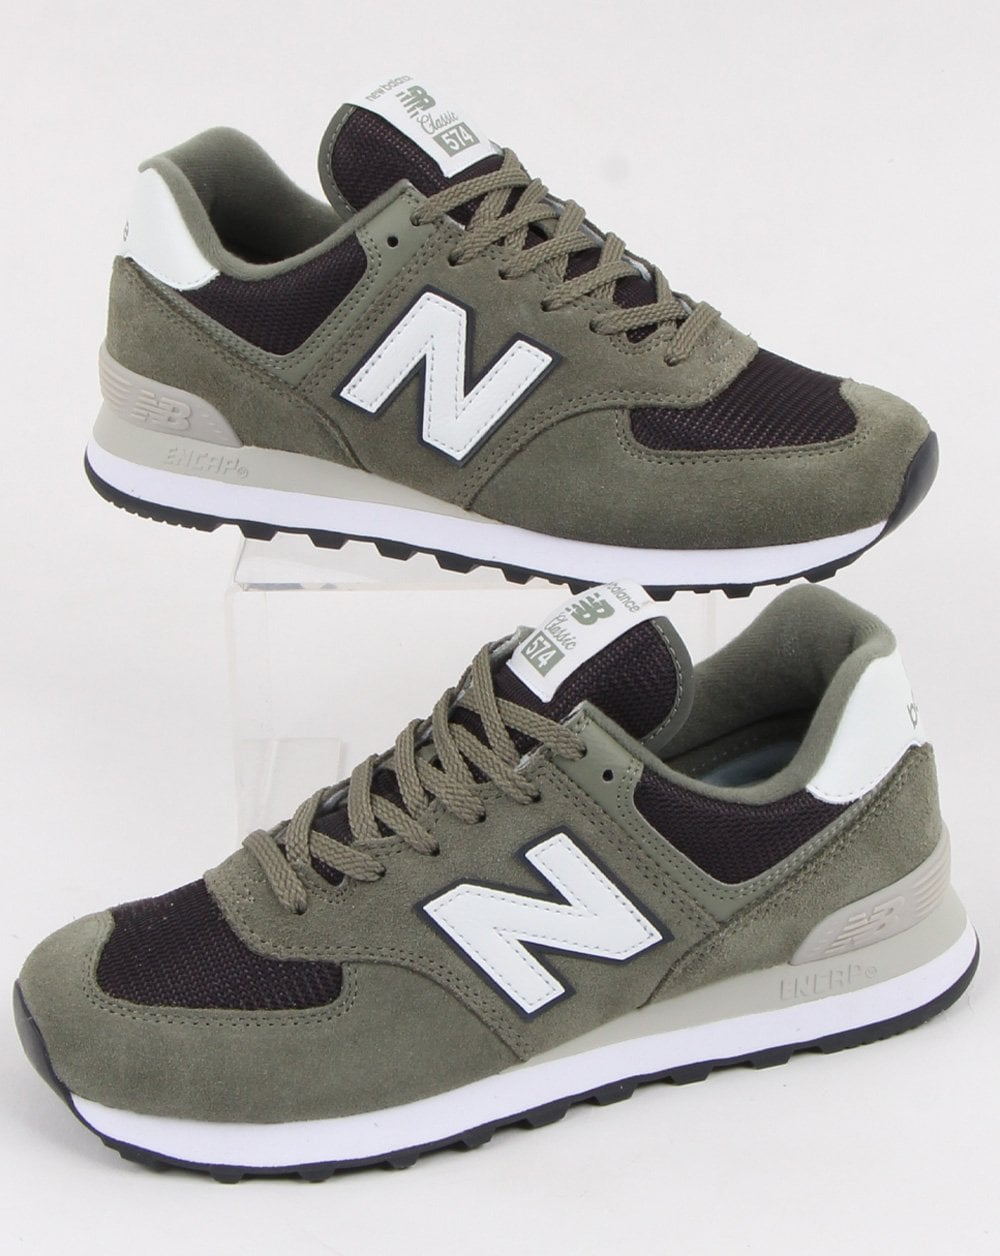 best service 08c83 79760 New Balance 574 Trainers Khaki Green